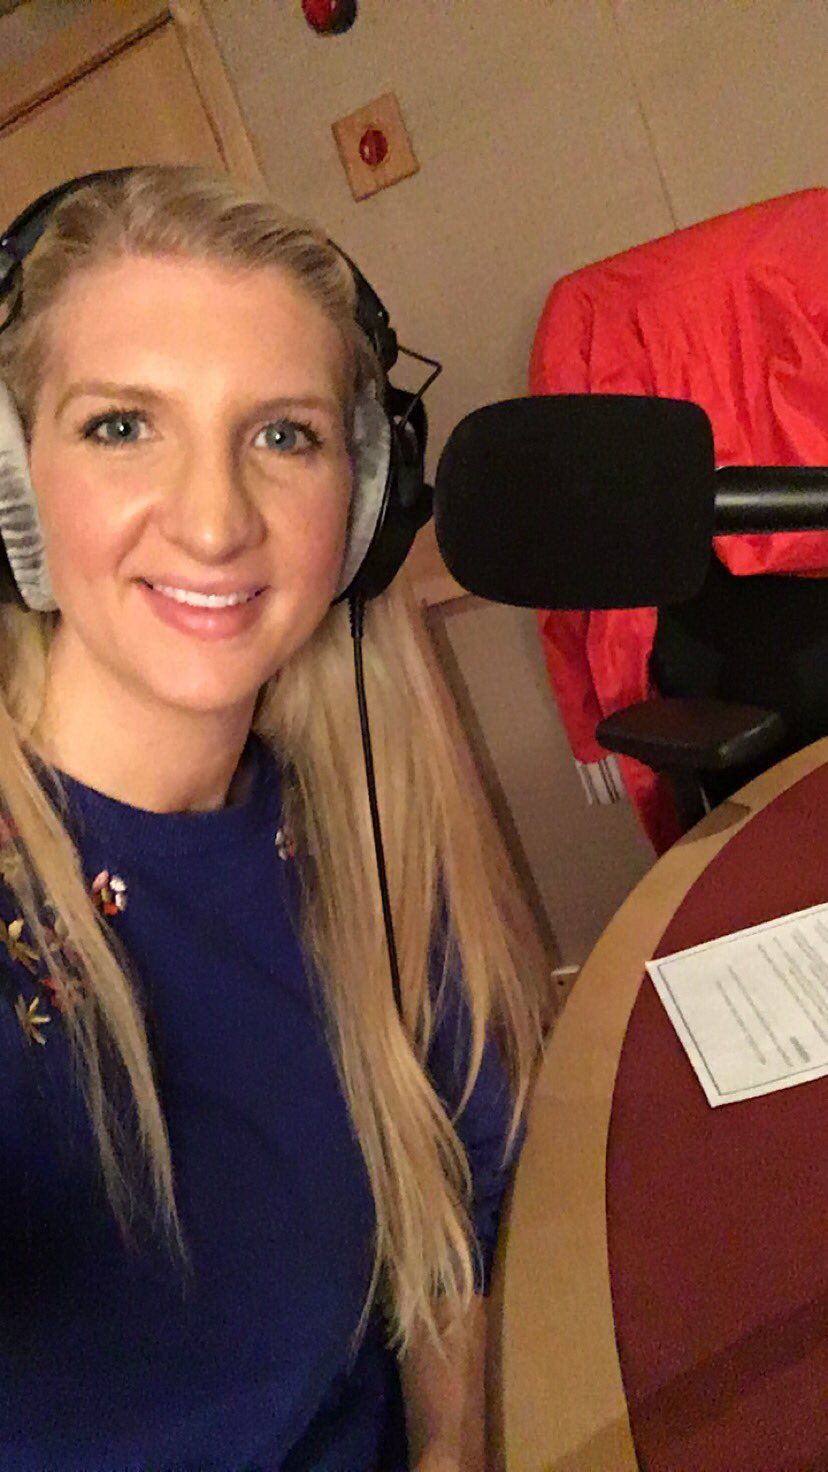 Radio day! In studio talking all about @LovePork research that reveals brits are lazy cooks! #letsgetcooking https://t.co/qKXIIrRdzD